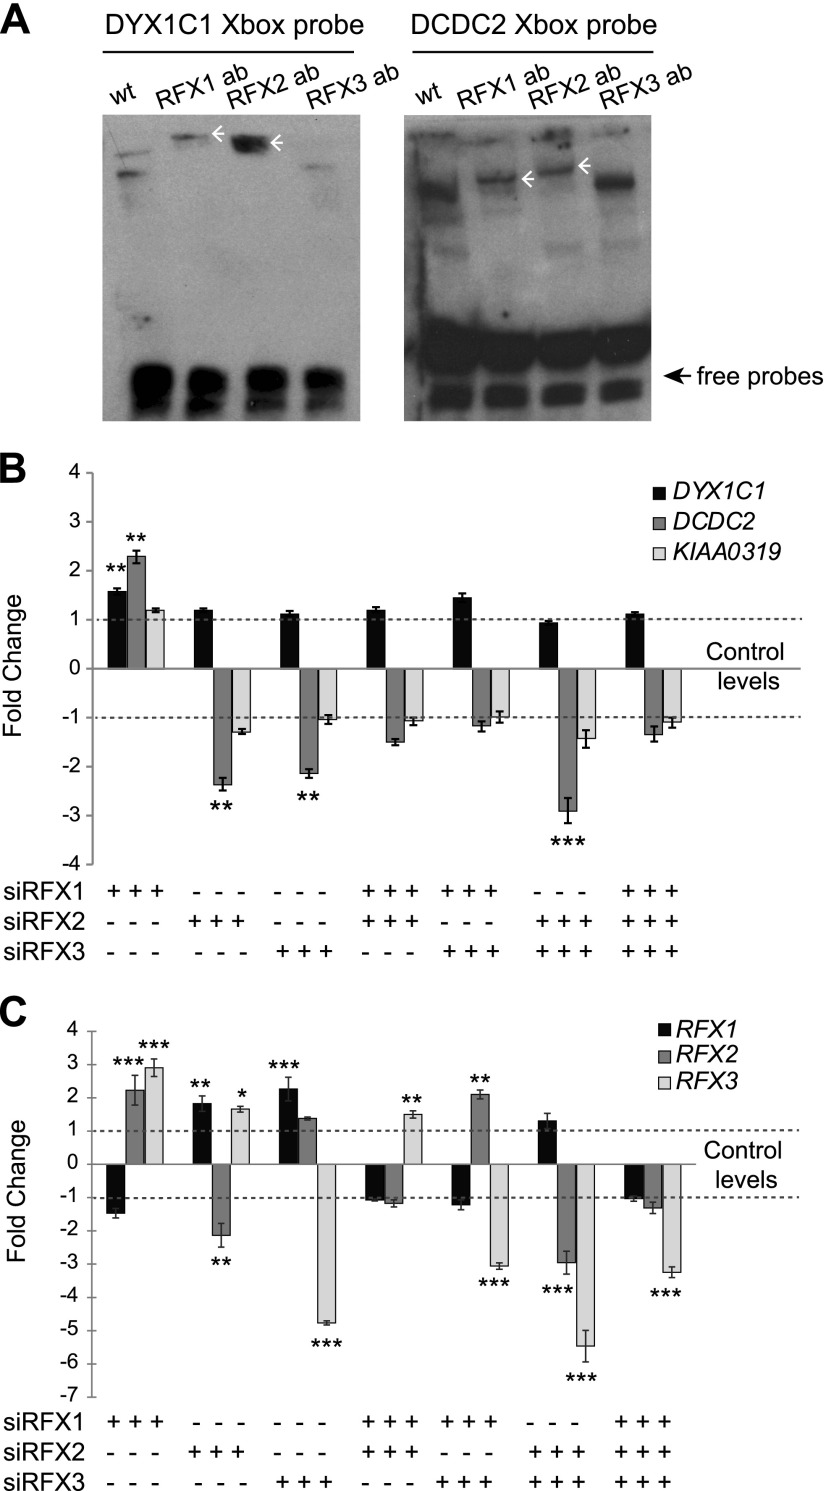 Knockdown of RFX1 , RFX2 , and RFX3 affect the expression of <t>DYX1C1</t> and DCDC2 but not KIAA0319 in hTERT-RPE1 cells. A ) Binding of RFX1 and RFX2 to the X-box motifs present in DYX1C1 and DCDC2 promoters. Biotinylated probes spanning the X-box motifs were incubated with nuclear extracts from serum-starved hTERT-RPE1 cells with or without antibodies (ab) against RFX1, RFX2, and RFX3. Supershifts for both probes were detected for RFX1 and RFX2 antibodies (white arrowheads). One representative experiment of 3 is shown. B ) Fold-change differences in the expression of DCGs upon knockdown of RFX TFs. By using siRNA against RFX1 , RFX2 , and RFX3 , alone or in different combinations, genes were silenced in hTERT-RPE1 cells. Cells were thereafter starved for 24 h to induce ciliogenesis, and expression levels of DYX1C1 , DCDC2 , and KIAA0319 were measured by using qRT-PCR. C ) Fold-change difference in expression levels of RFX1 , RFX2 , and RFX3 upon siRNA silencing. qRT-PCR data are summarized by using the ΔΔC t method as displayed as mean fold-change (2 −ΔΔ Ct or −2 ΔΔ Ct ) ± sem . Significance of the post hoc tests after ANOVA is presented as *** P ≤ 0.001, ** P ≤ 0.01, * P ≤ 0.05 after multiple correction of simultaneous comparisons.